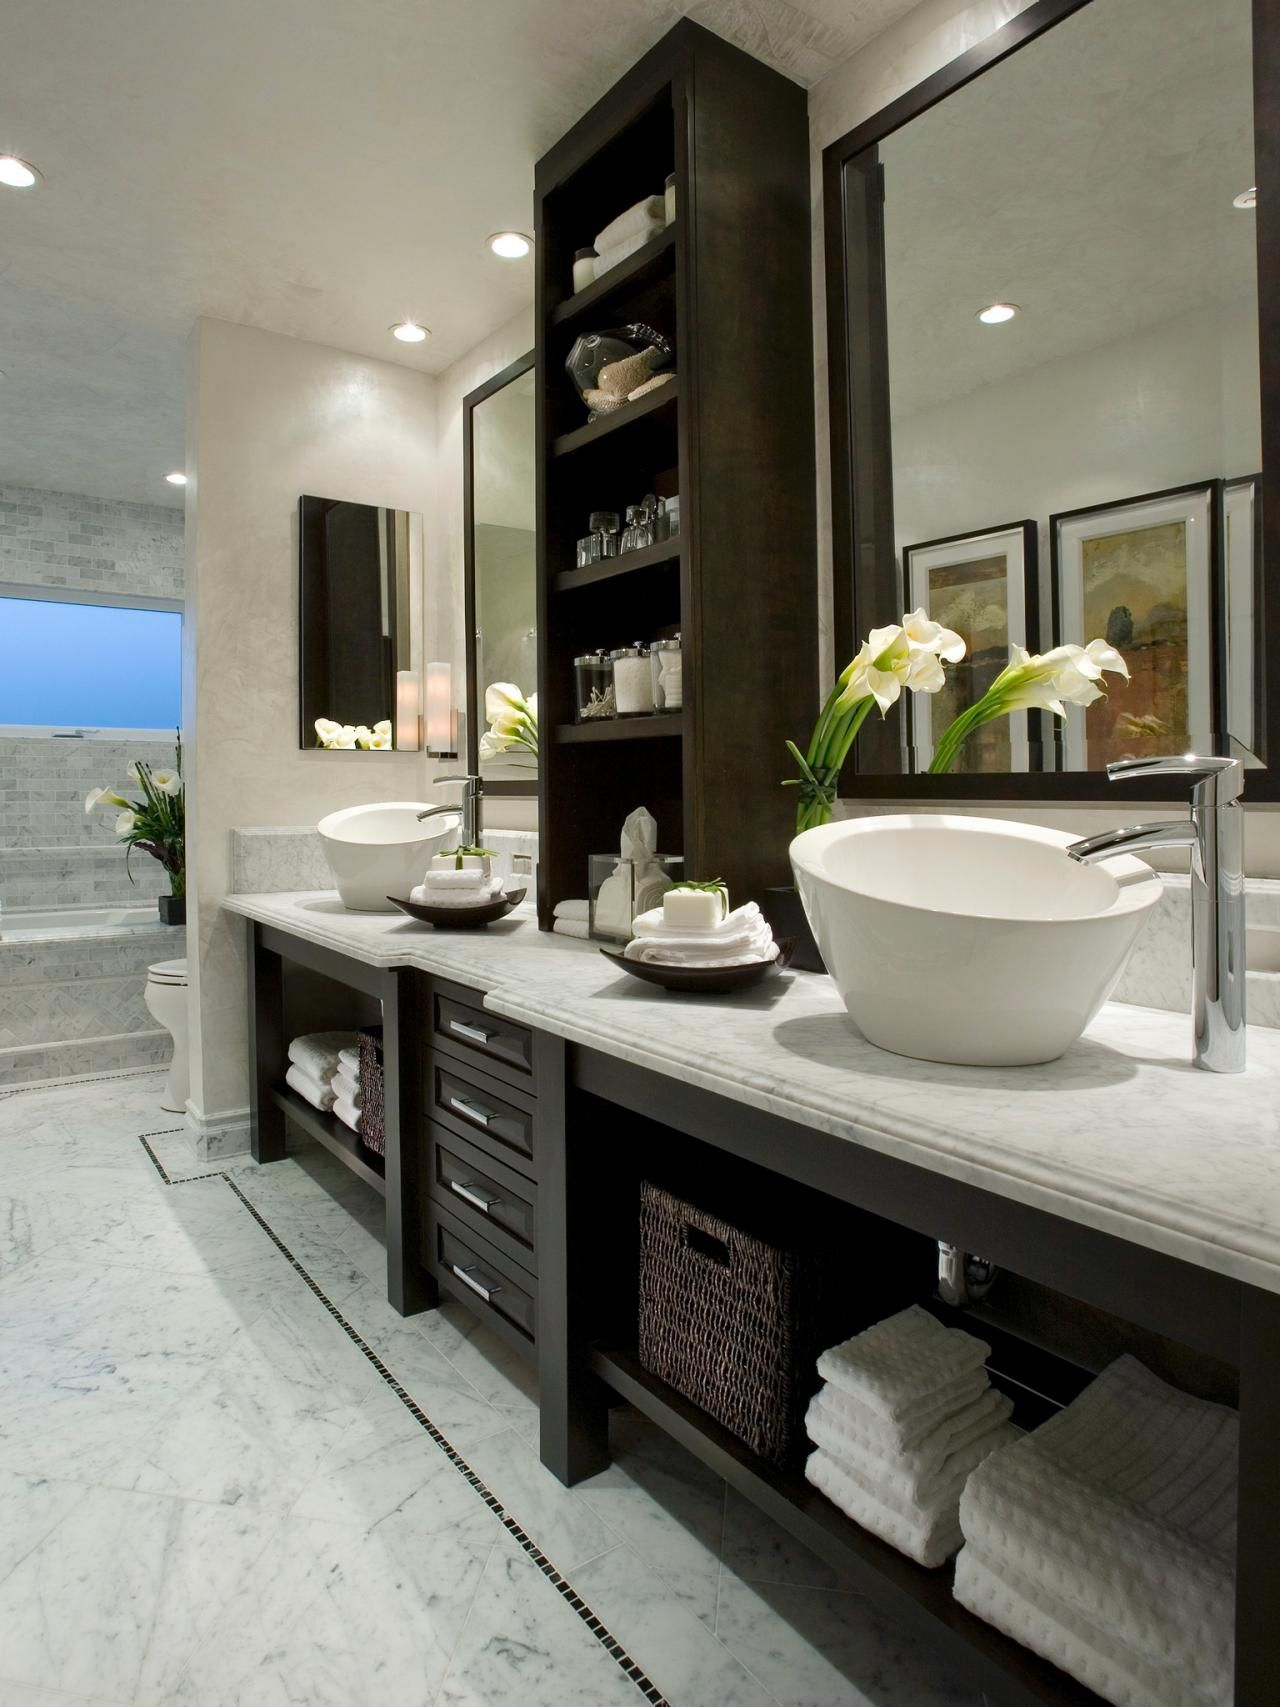 hgtv bathroom designs 2014. top 50 pinterest gallery 2014 hgtv bathroom designs